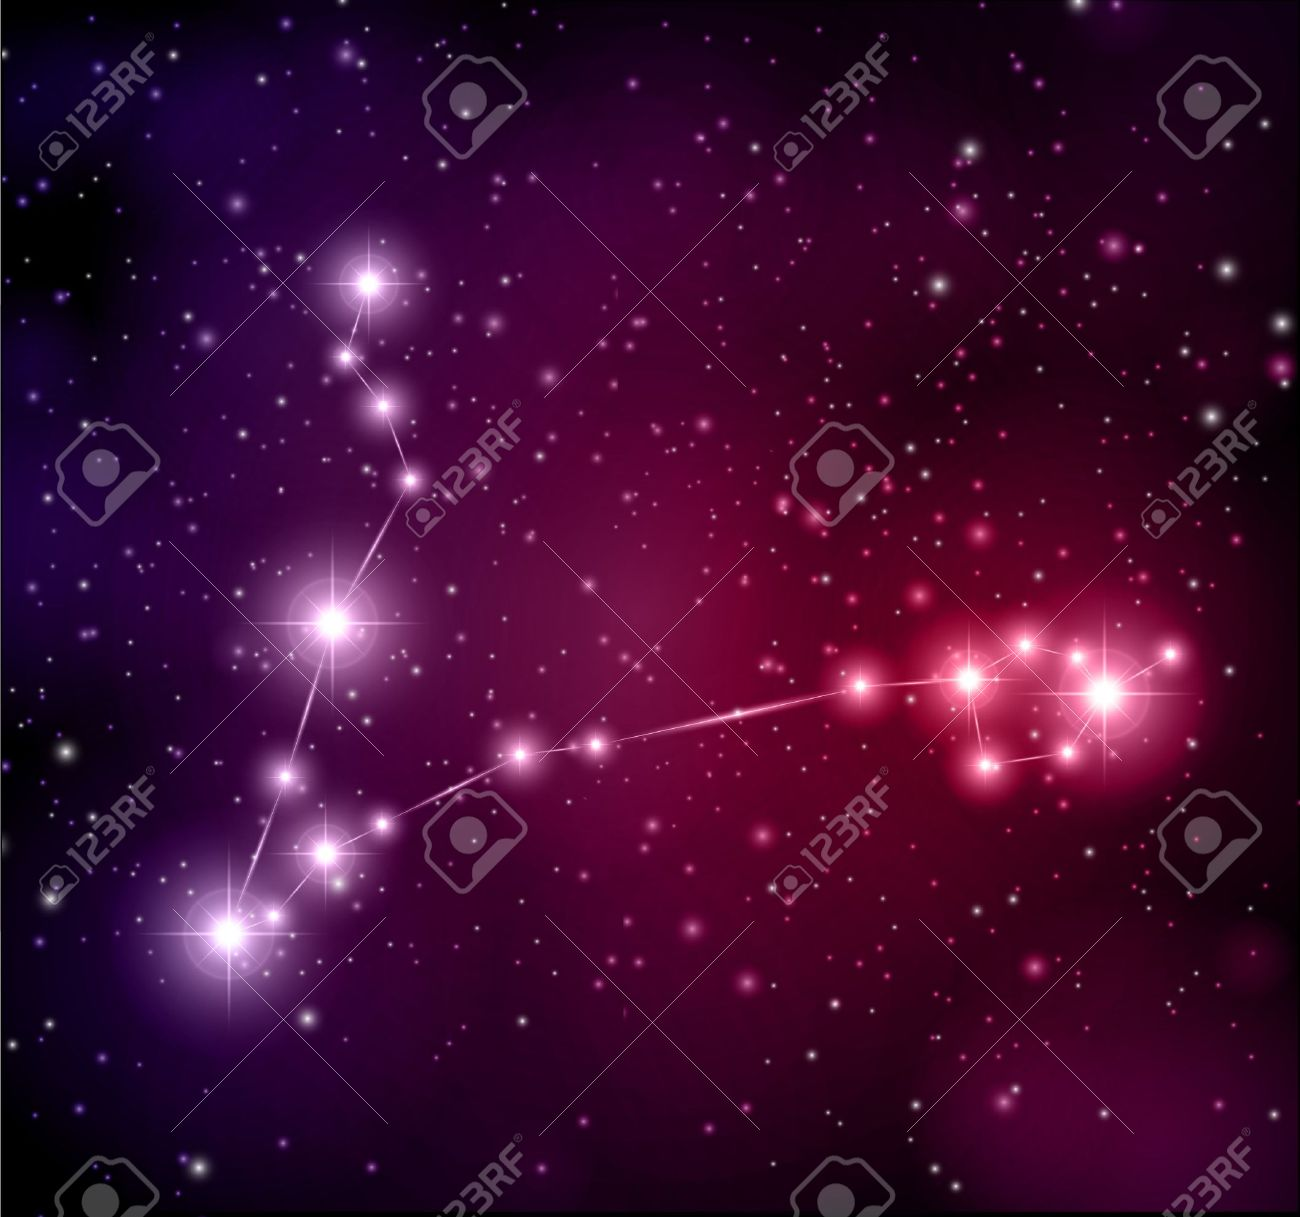 abstract space background Pisces constellation Stock Vector - 14305692